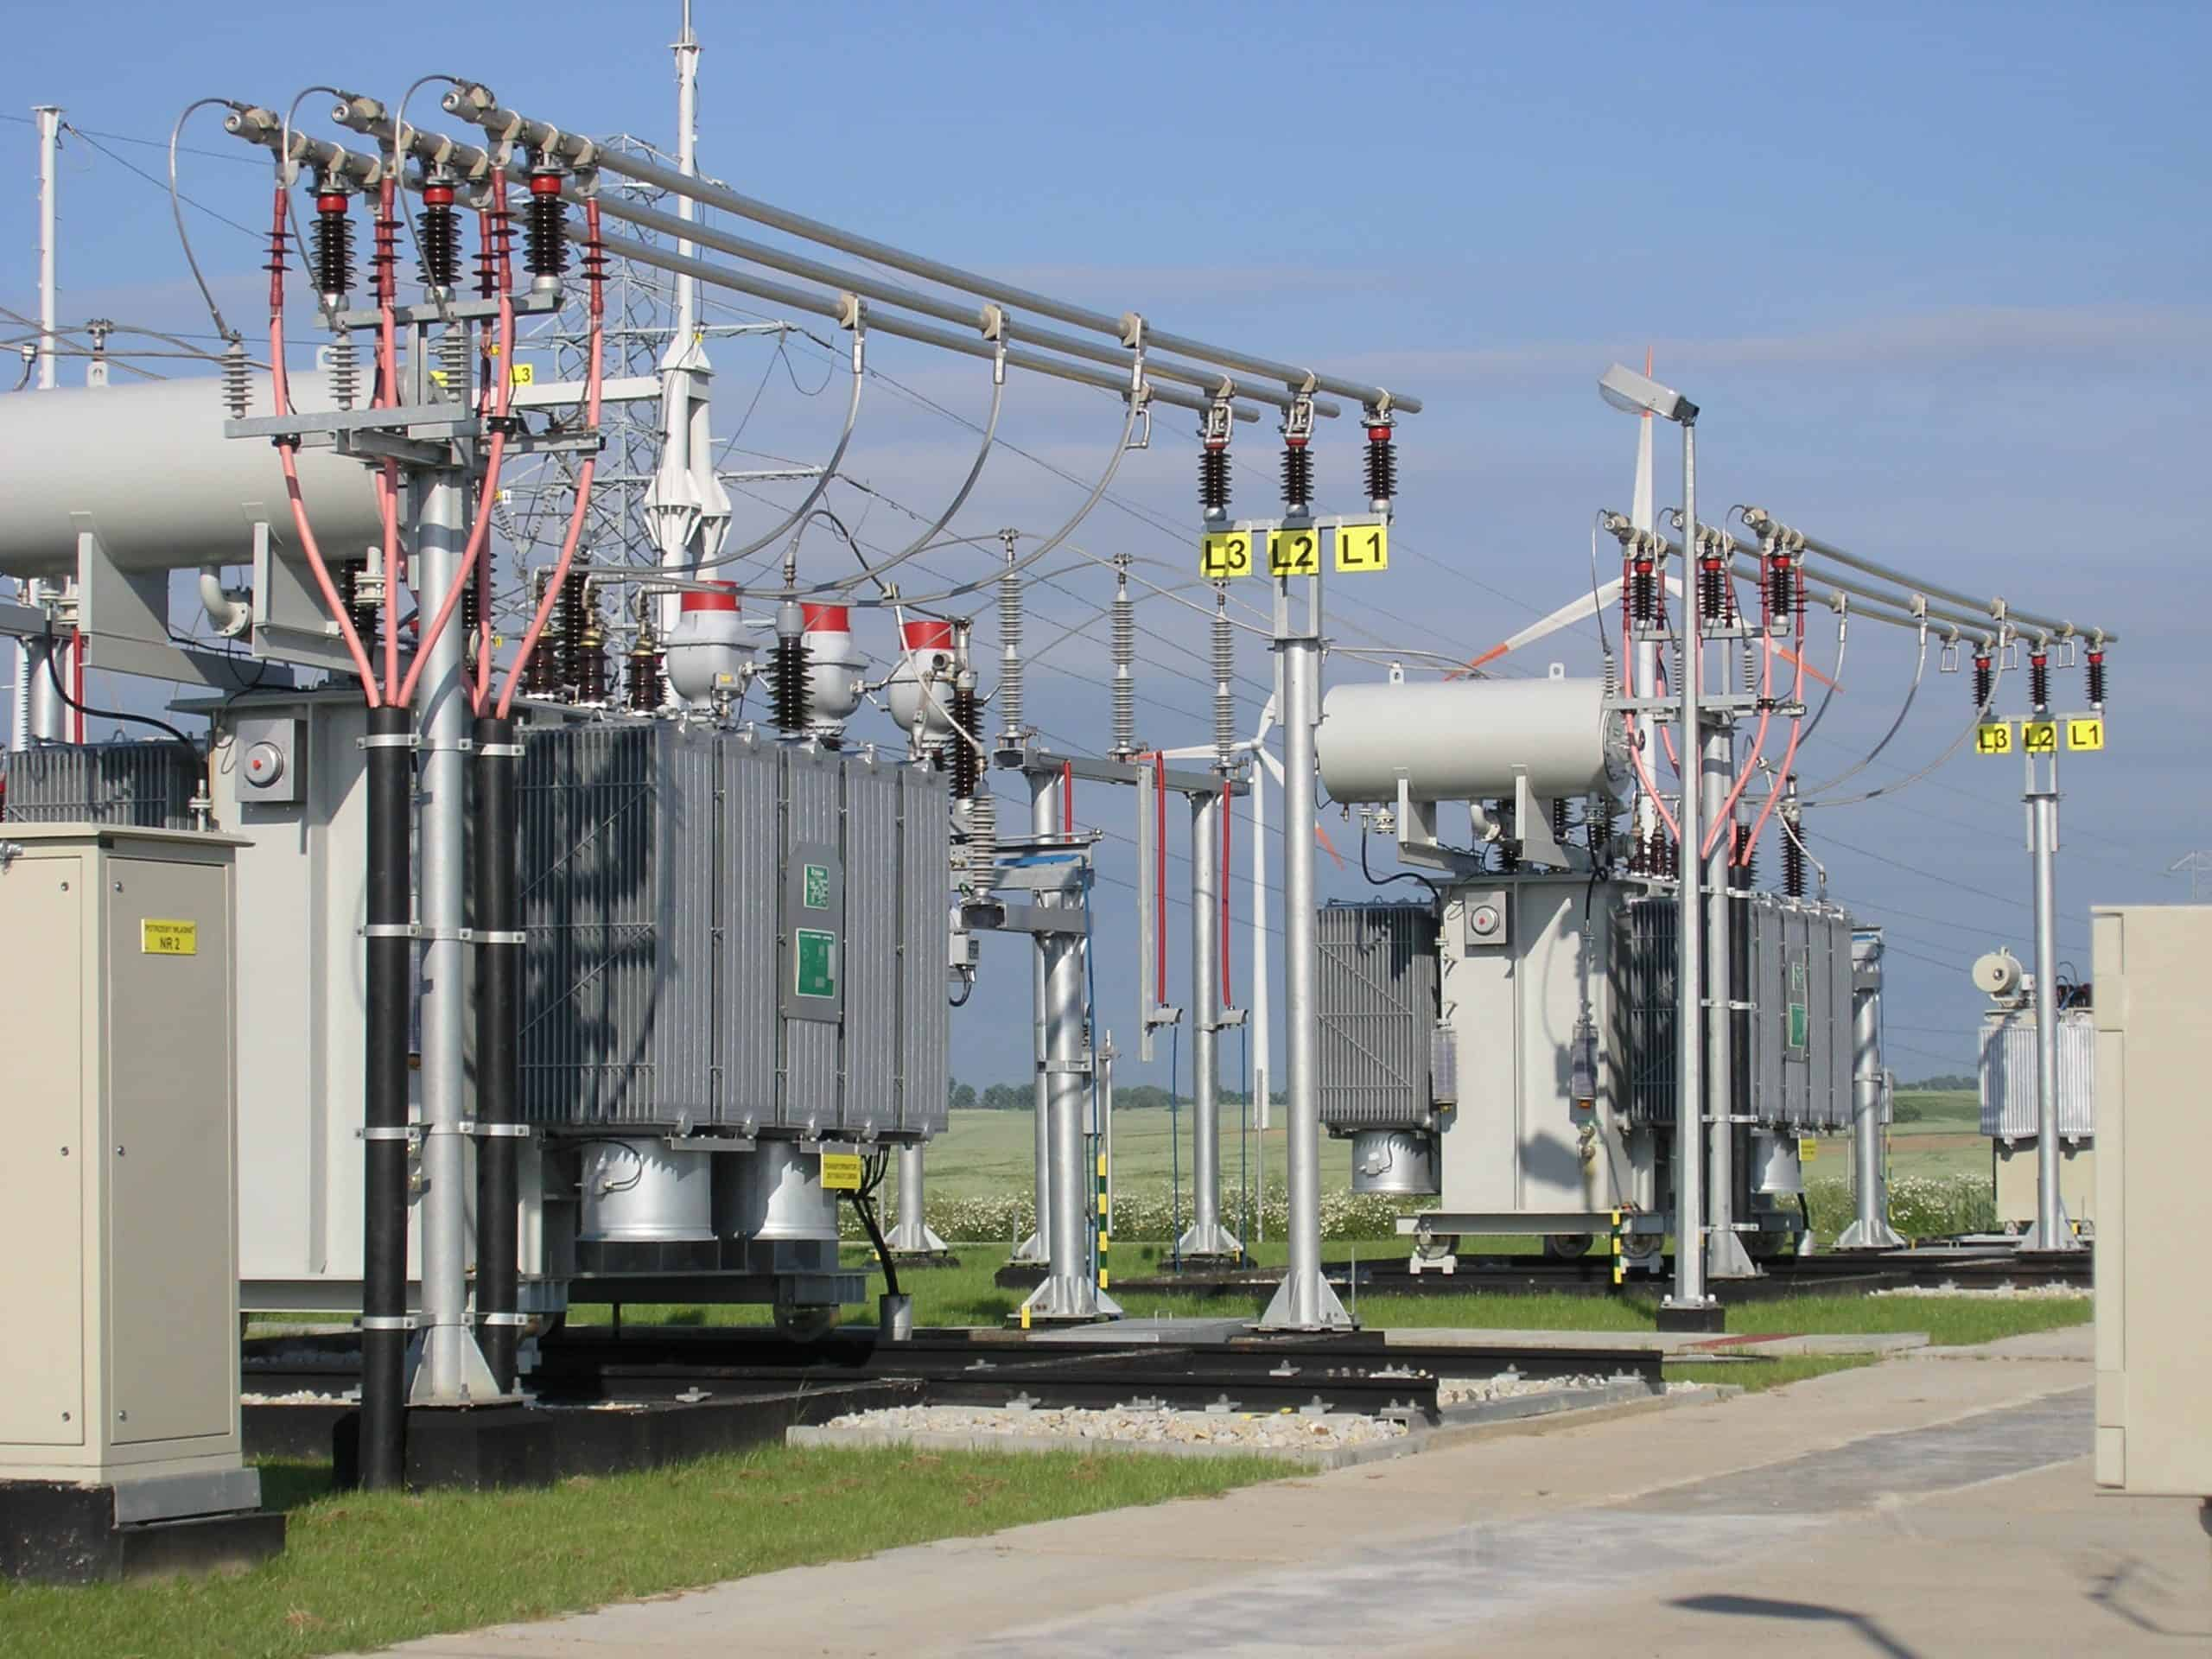 Power transformers in substation